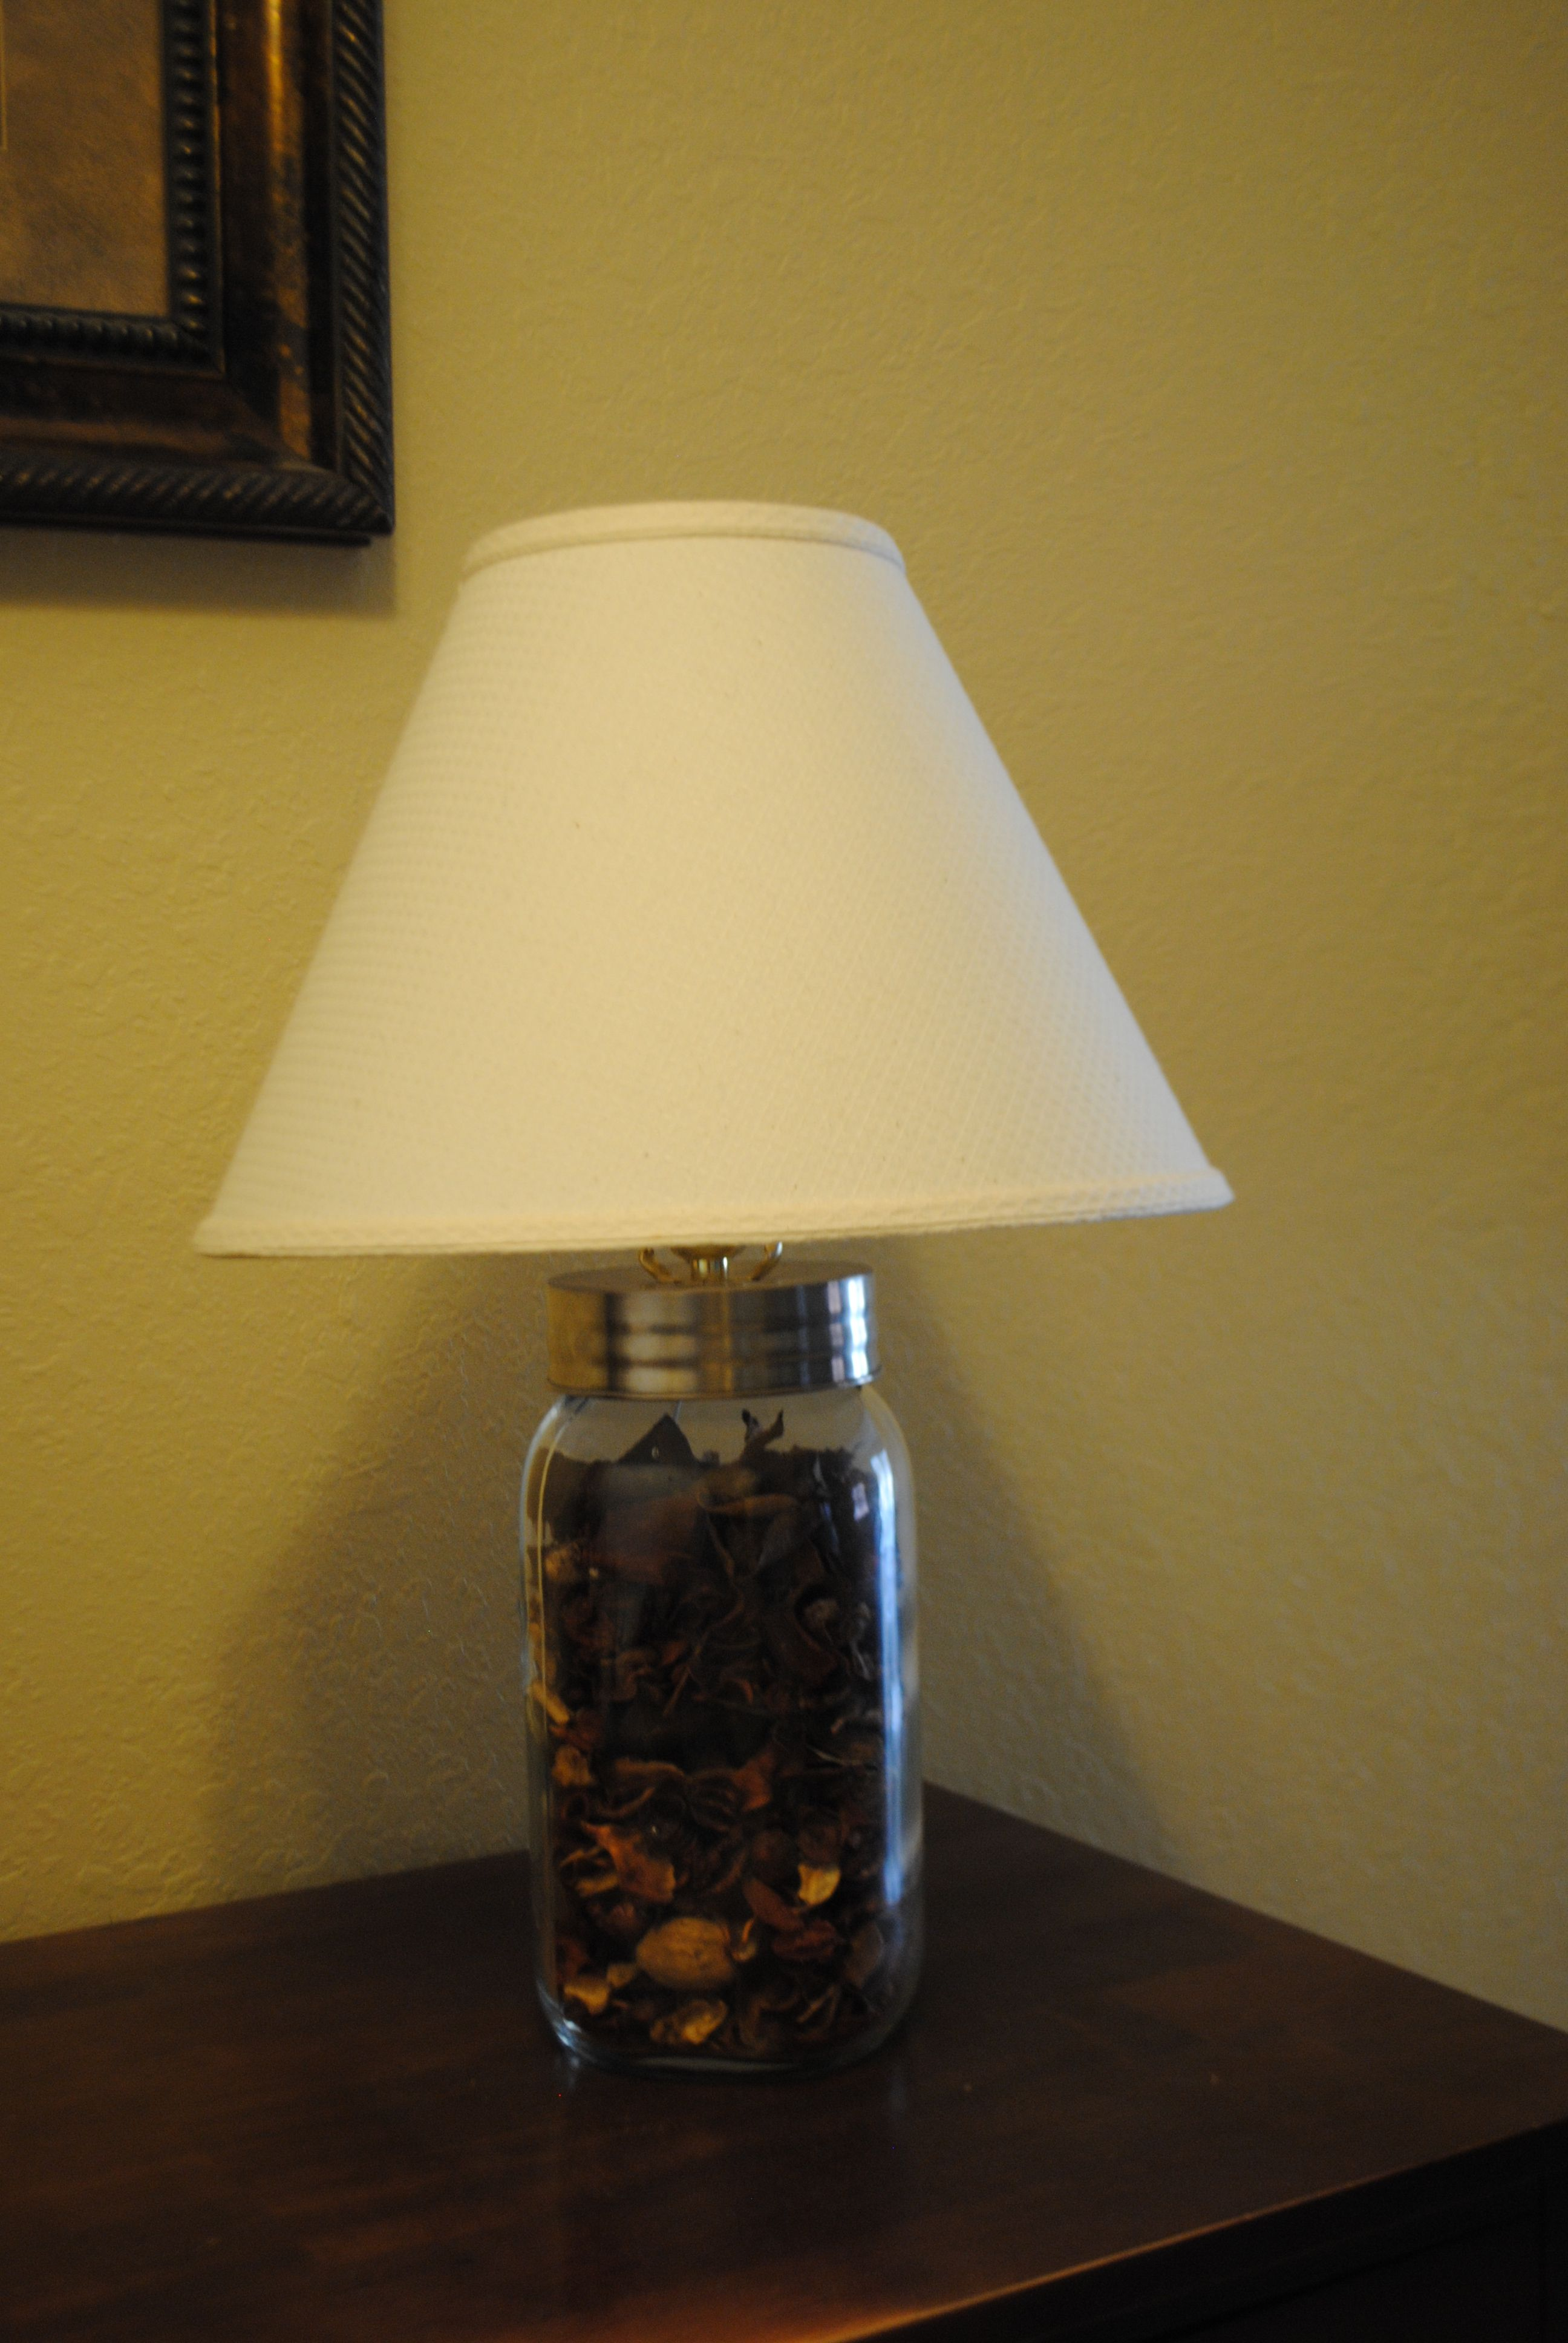 Lamp made from a giant mason jar. I bought the lamp kit at